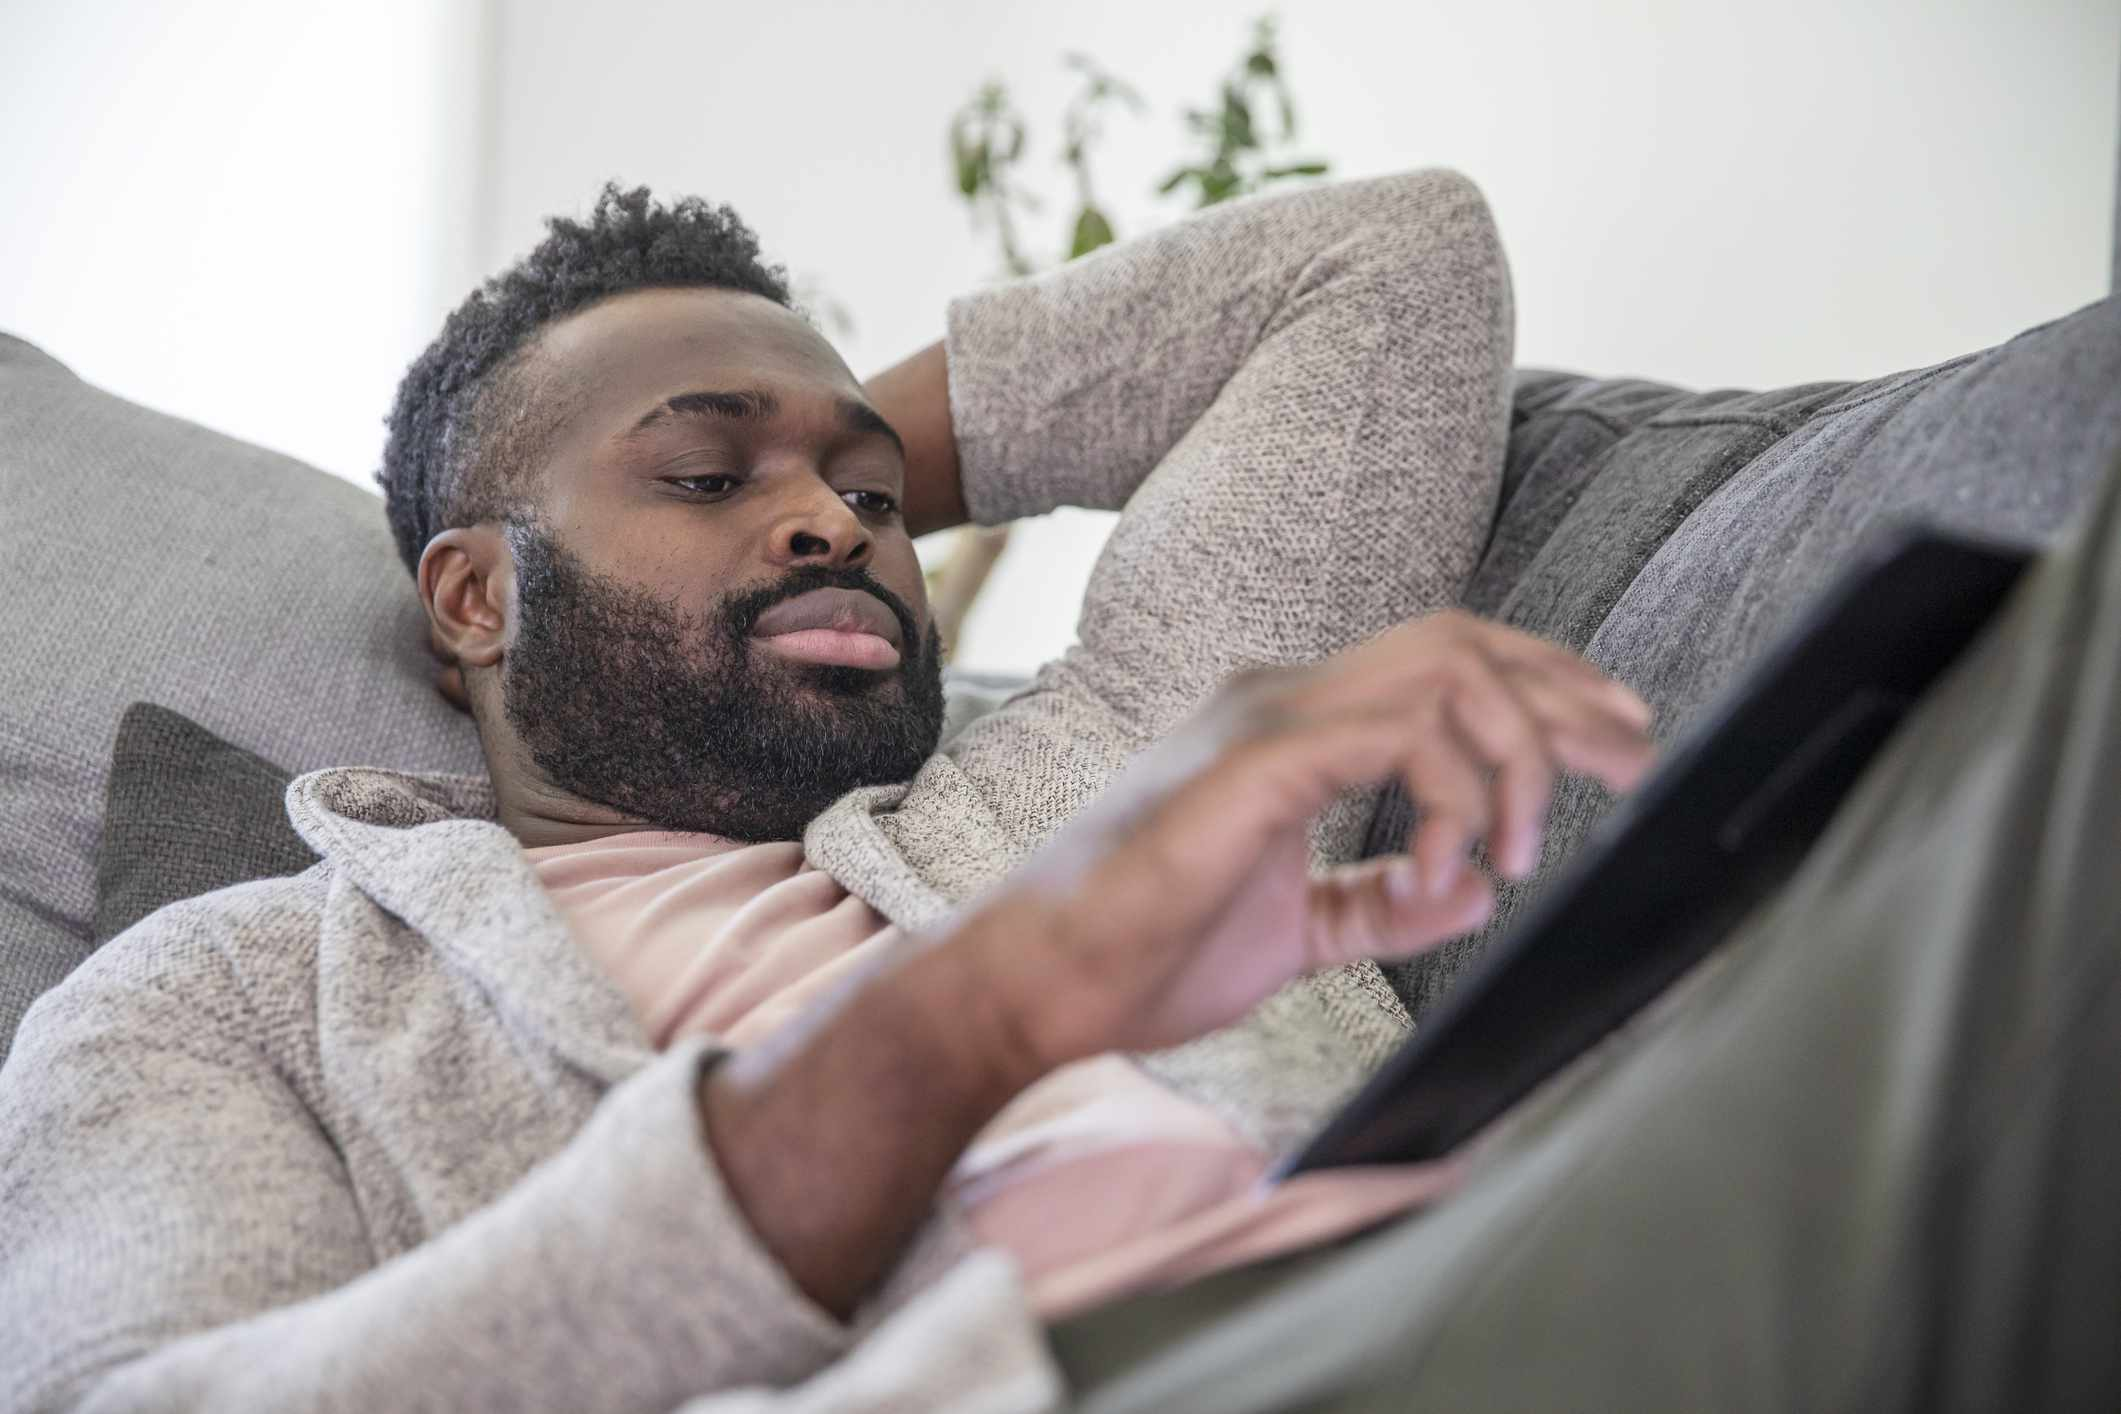 Man reclines on couch, watches tablet